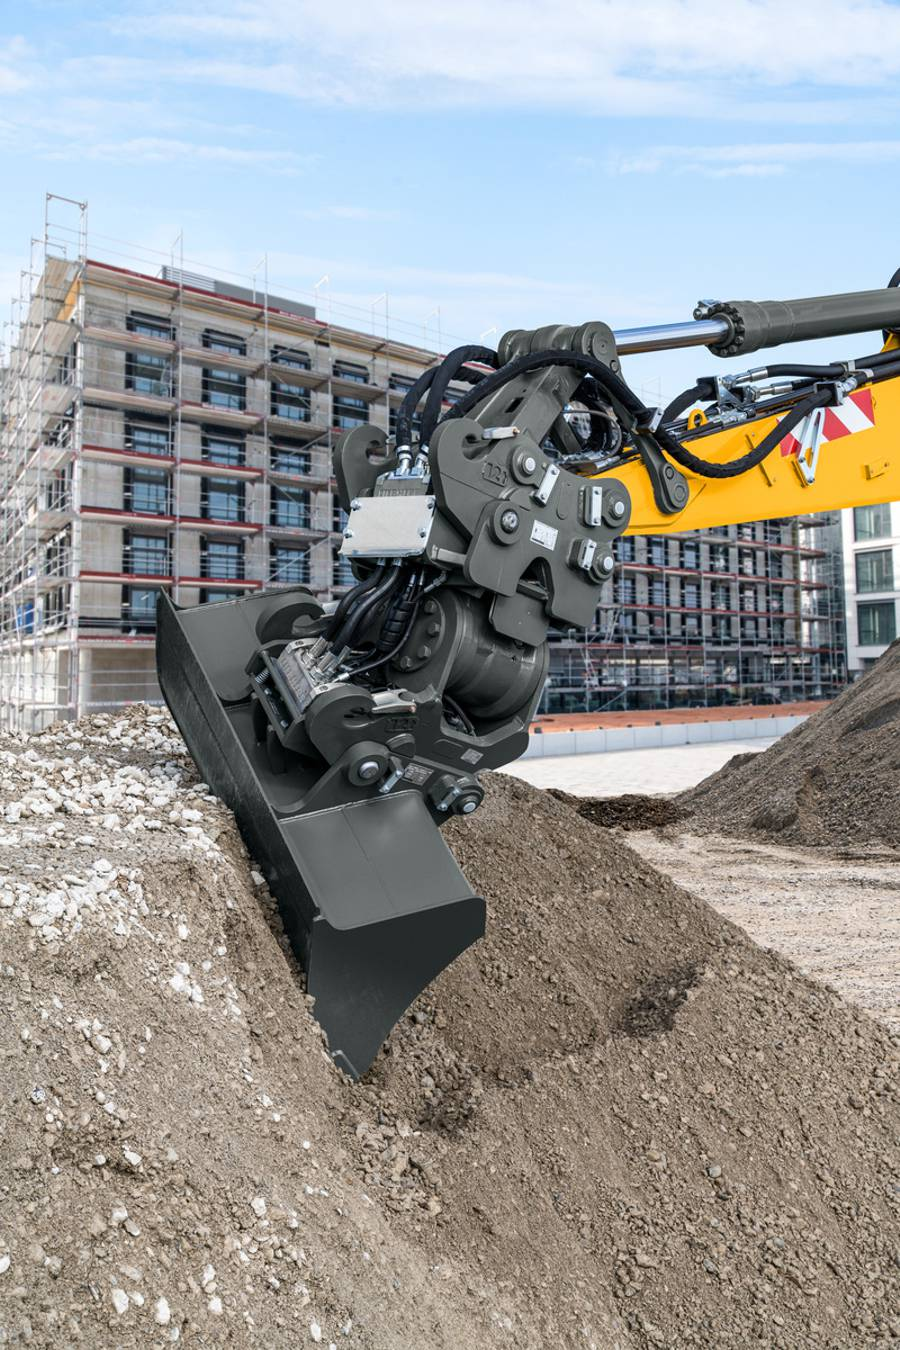 In the sandwich attachment version the connection between stick end and LiTiU, as well as the bottom of the LiTiU and attachment, is realised with the fully automatic Liebherr quick coupling system. The new LiTiU 48 unit makes possible swing angles of up to 2 x 50°.